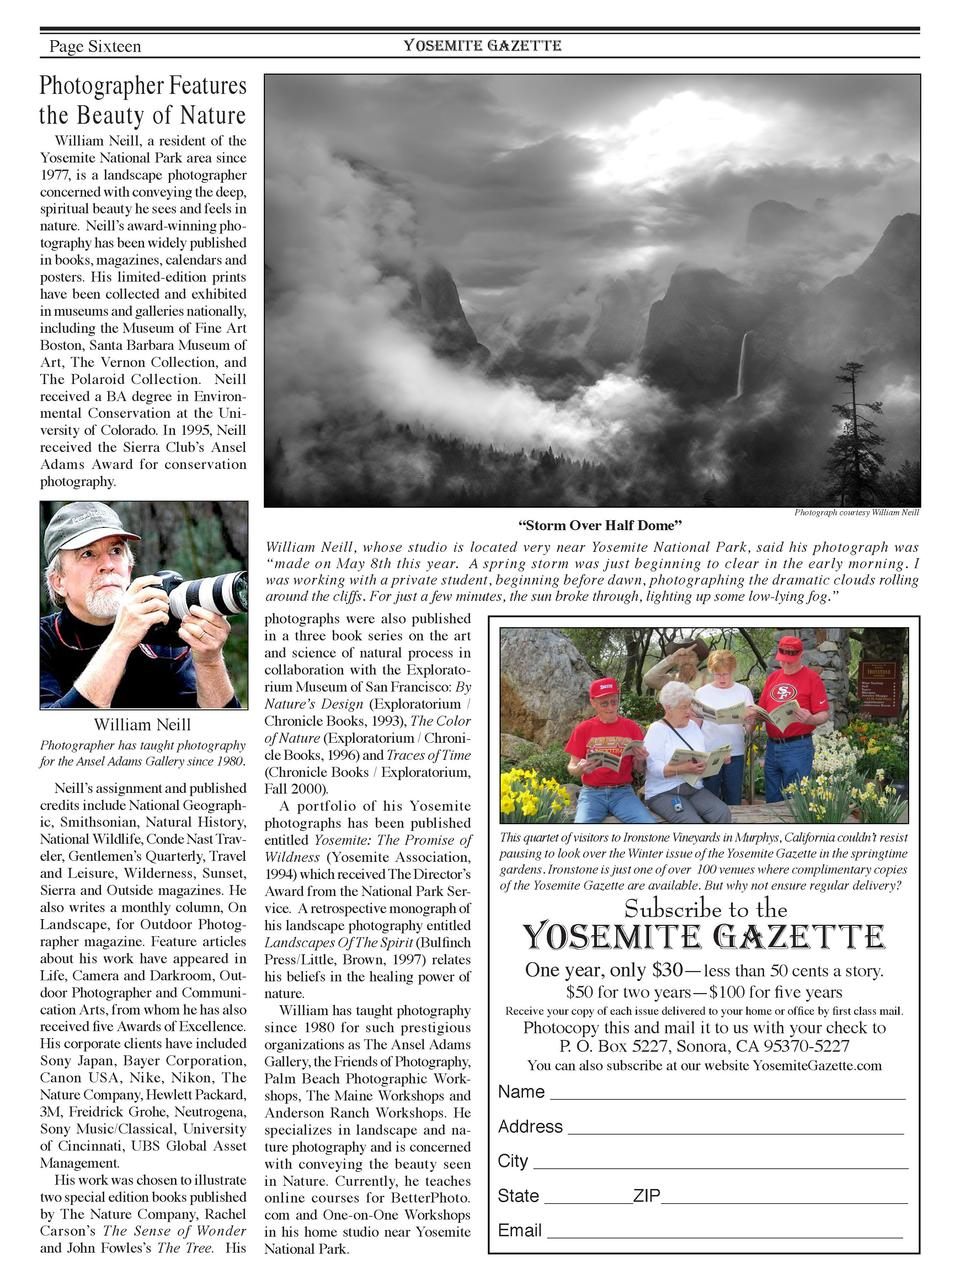 Page Sixteen  YOSEMITE GAZETTE  Photographer Features the Beauty of Nature William Neill, a resident of the Yosemite Natio...